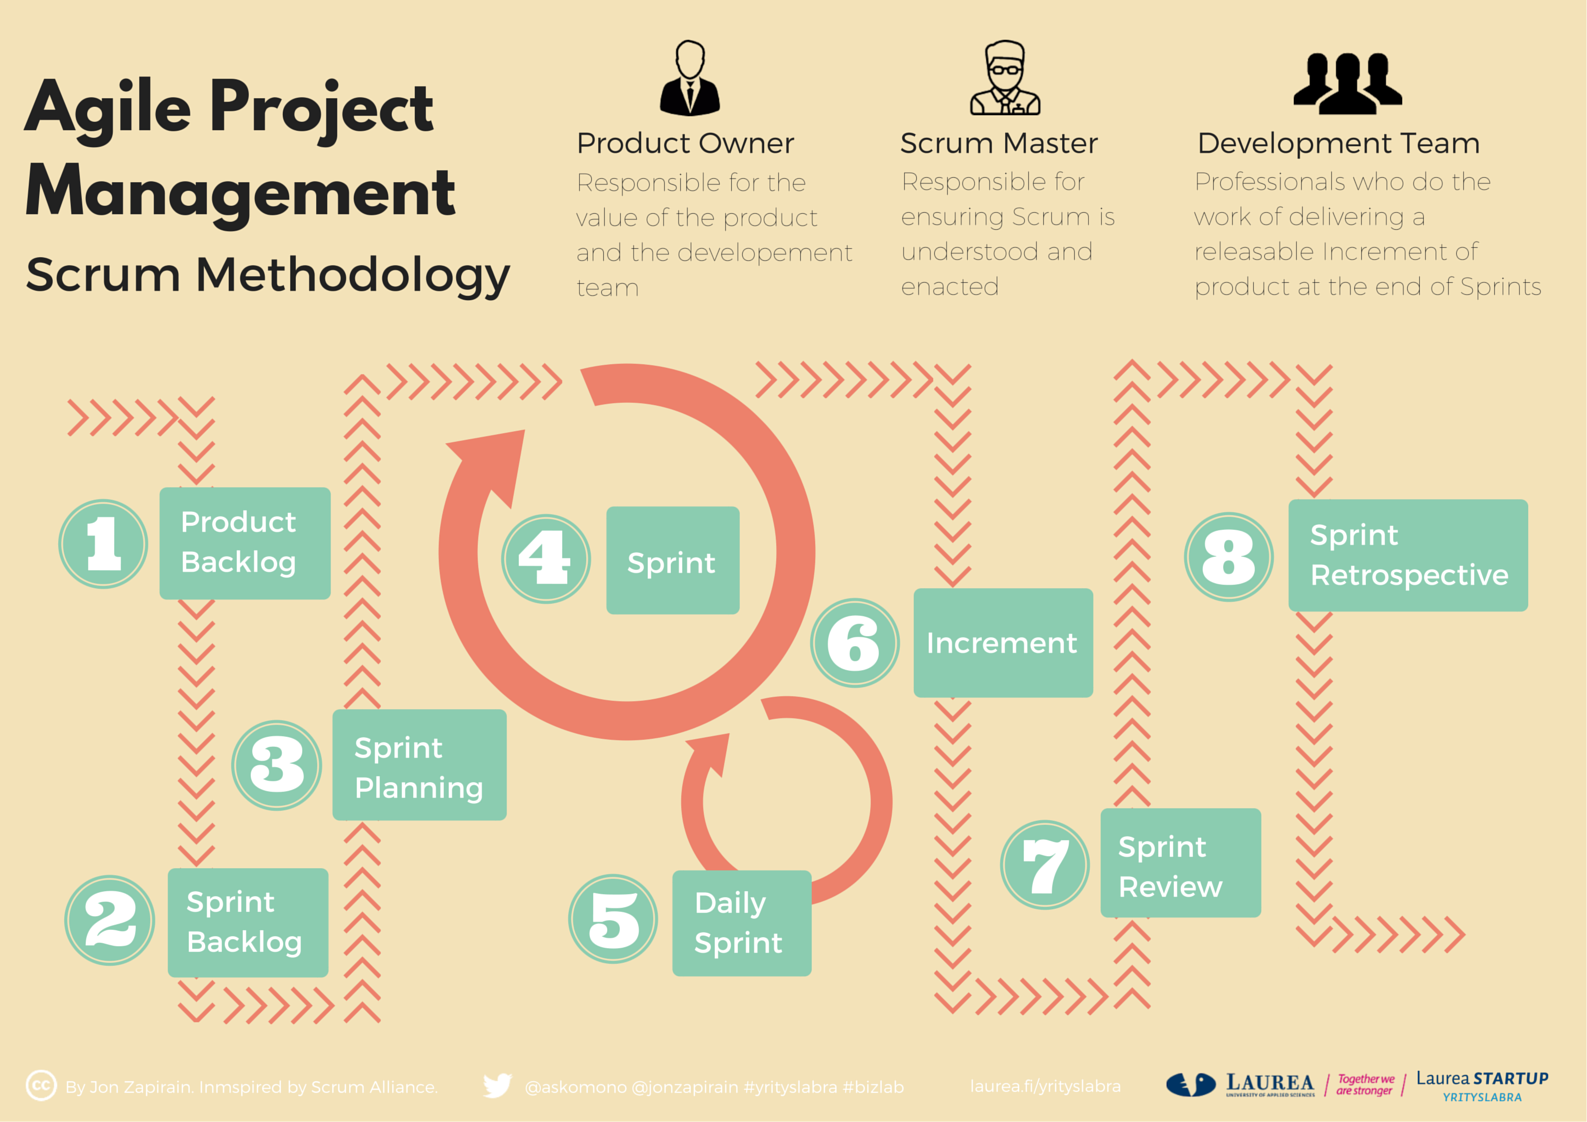 5 benefits of agile project management you must know about